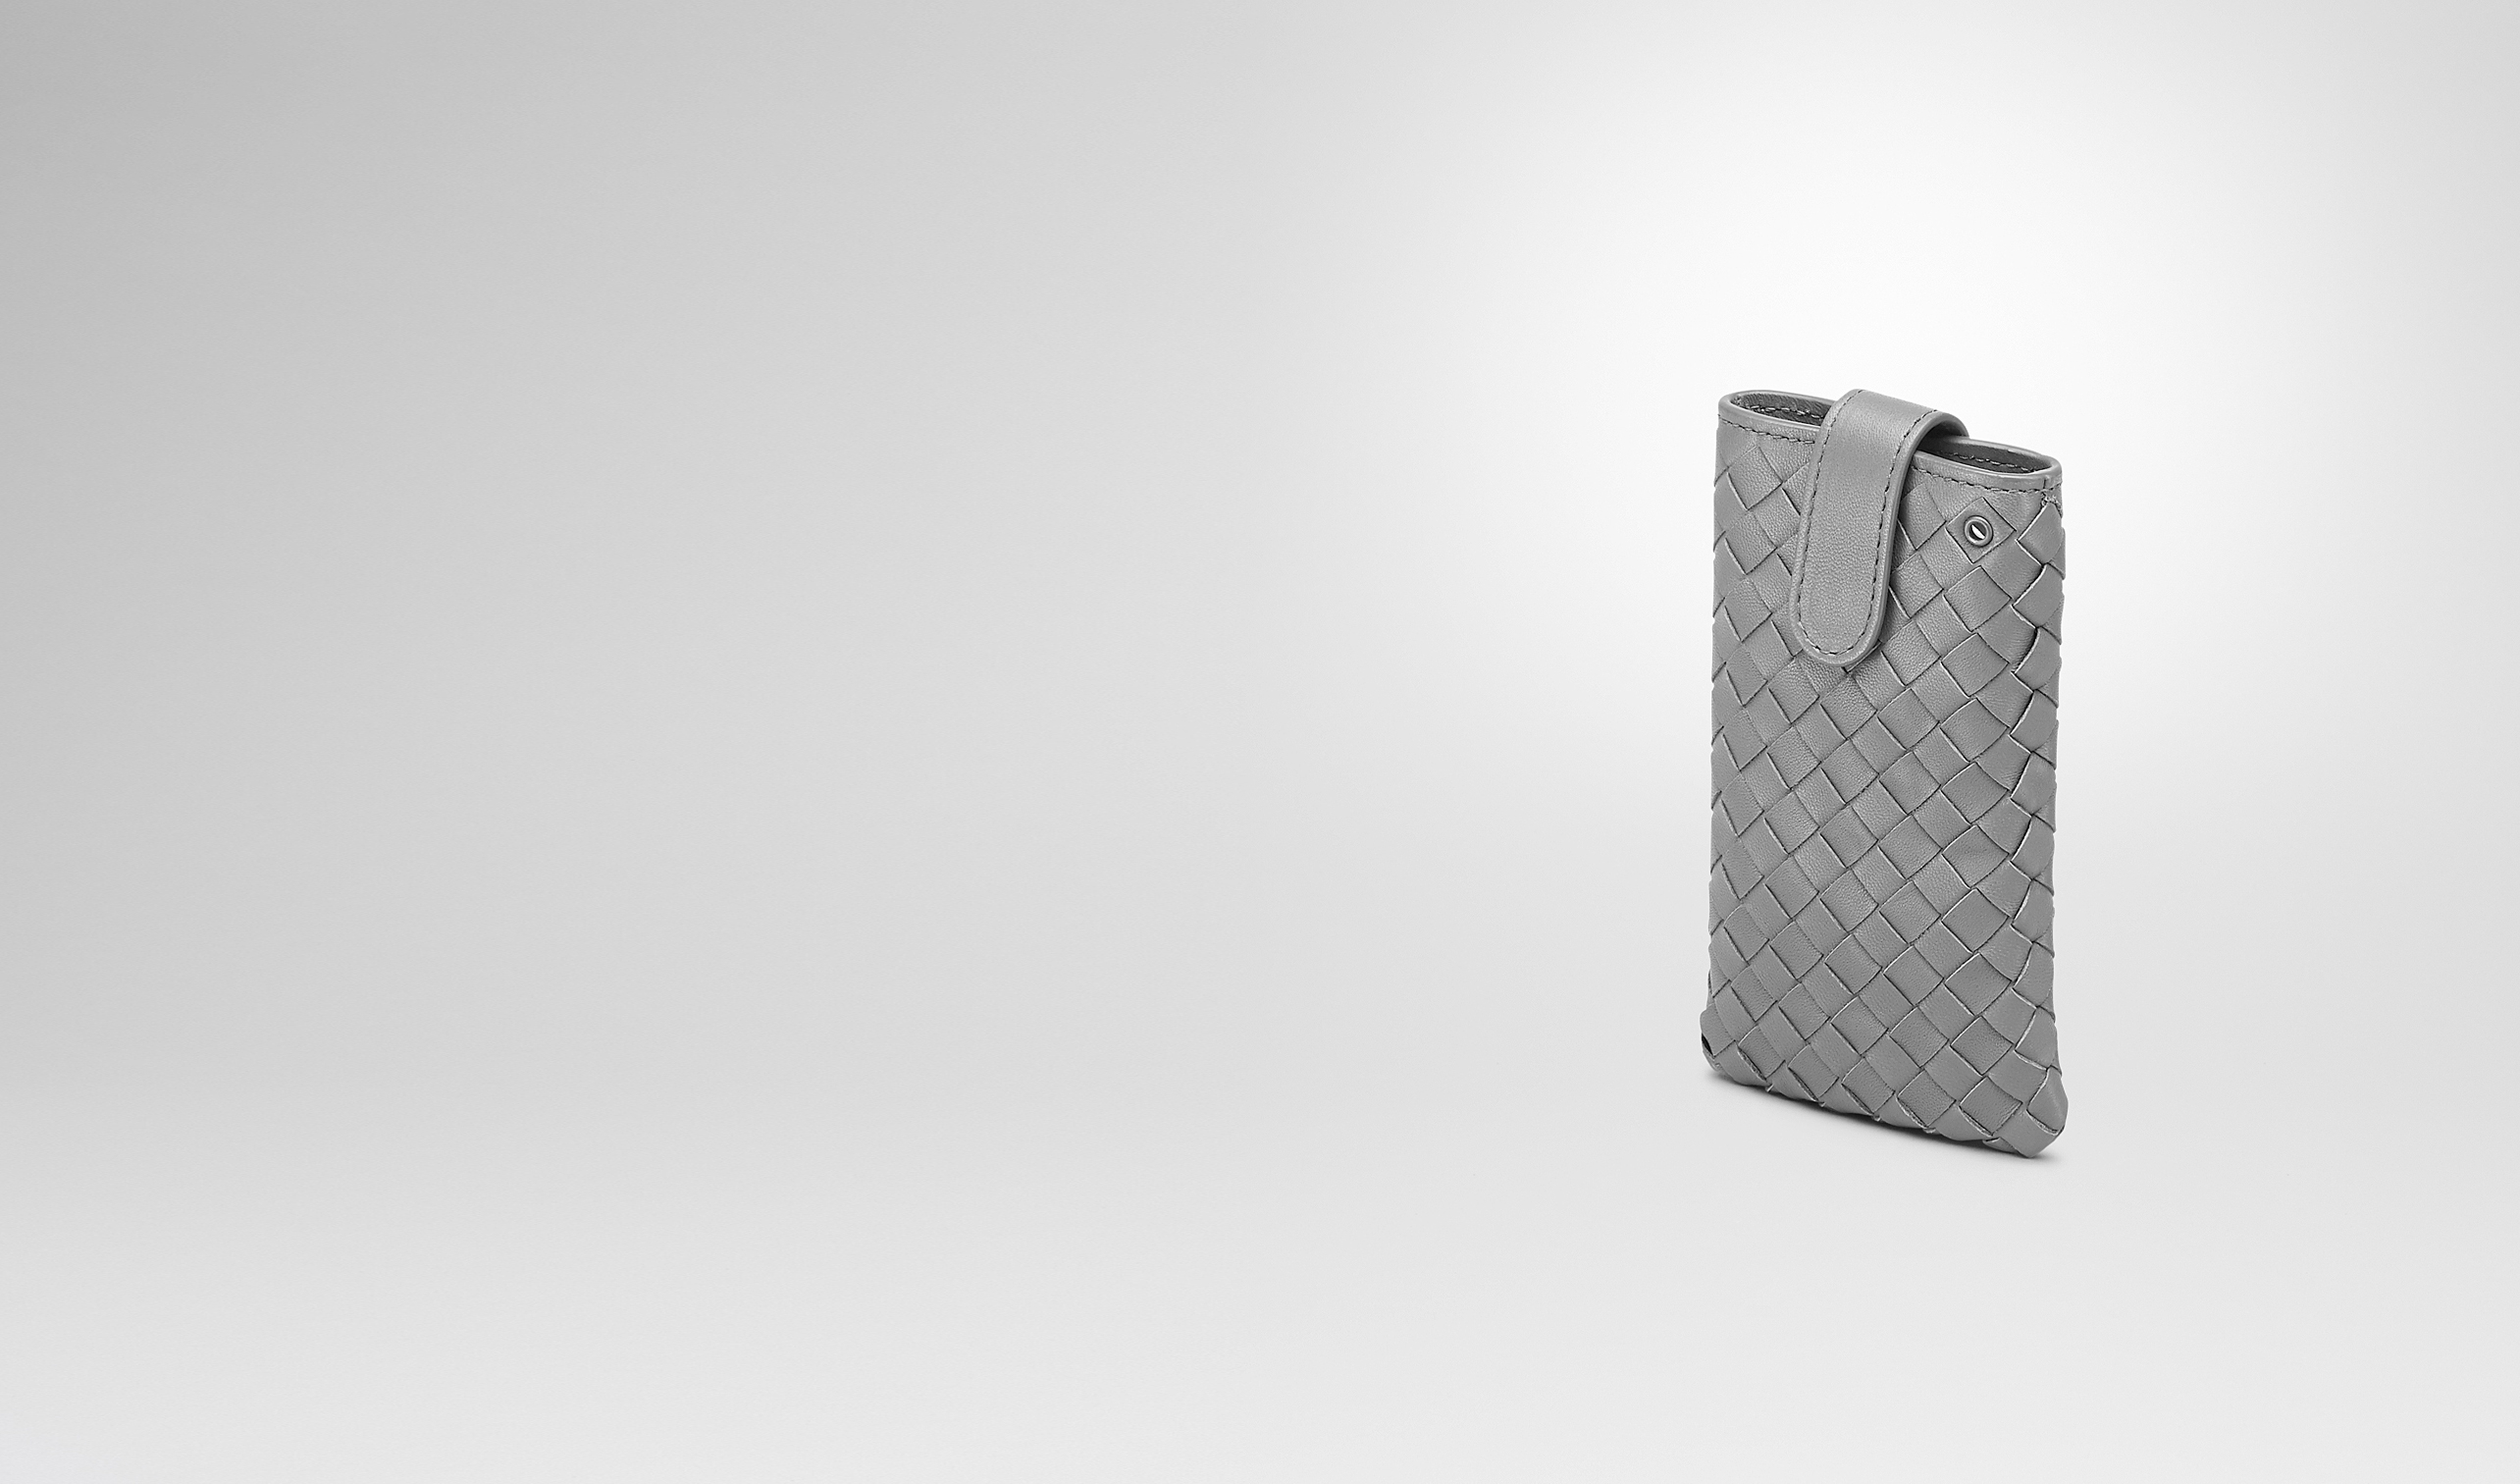 BOTTEGA VENETA Altro accessorio in pelle E PORTA IPHONE IN INTRECCIATO NAPPA NEW LIGHT GREY pl